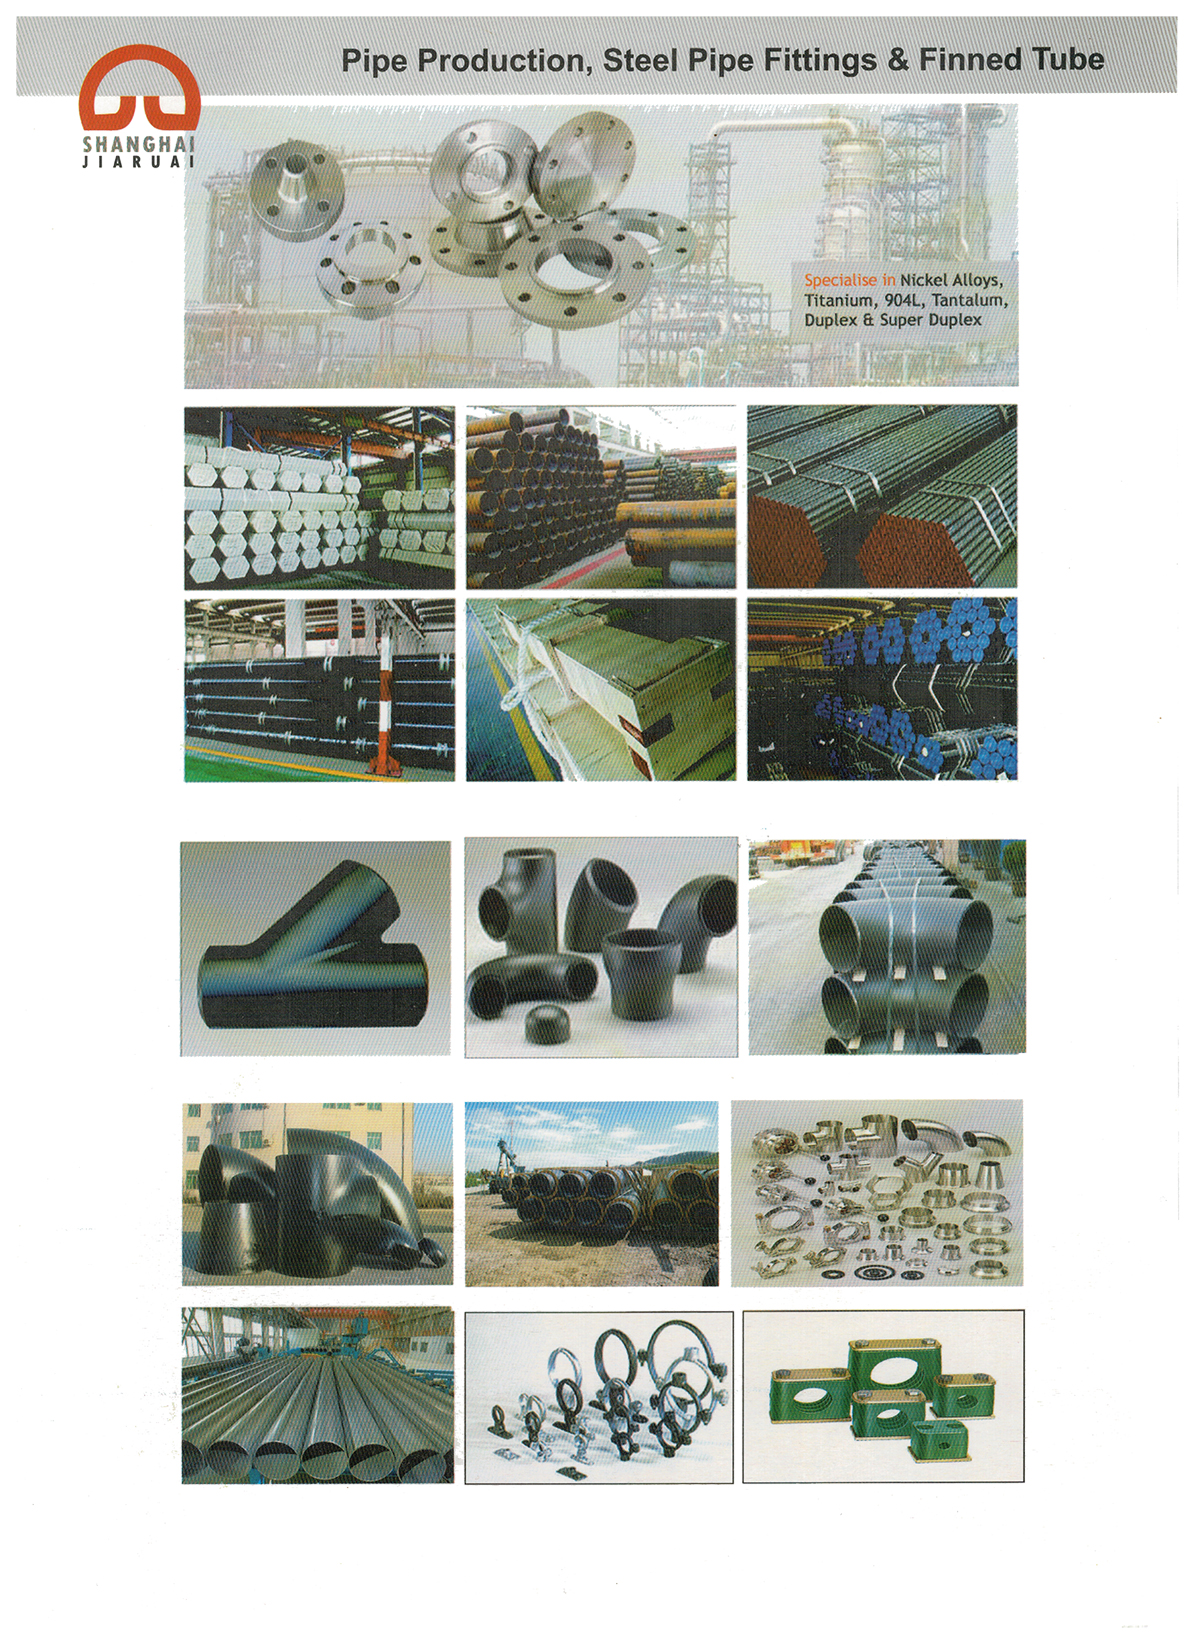 Pipe Production, Steel Pipe Fittings & Finned Tubs